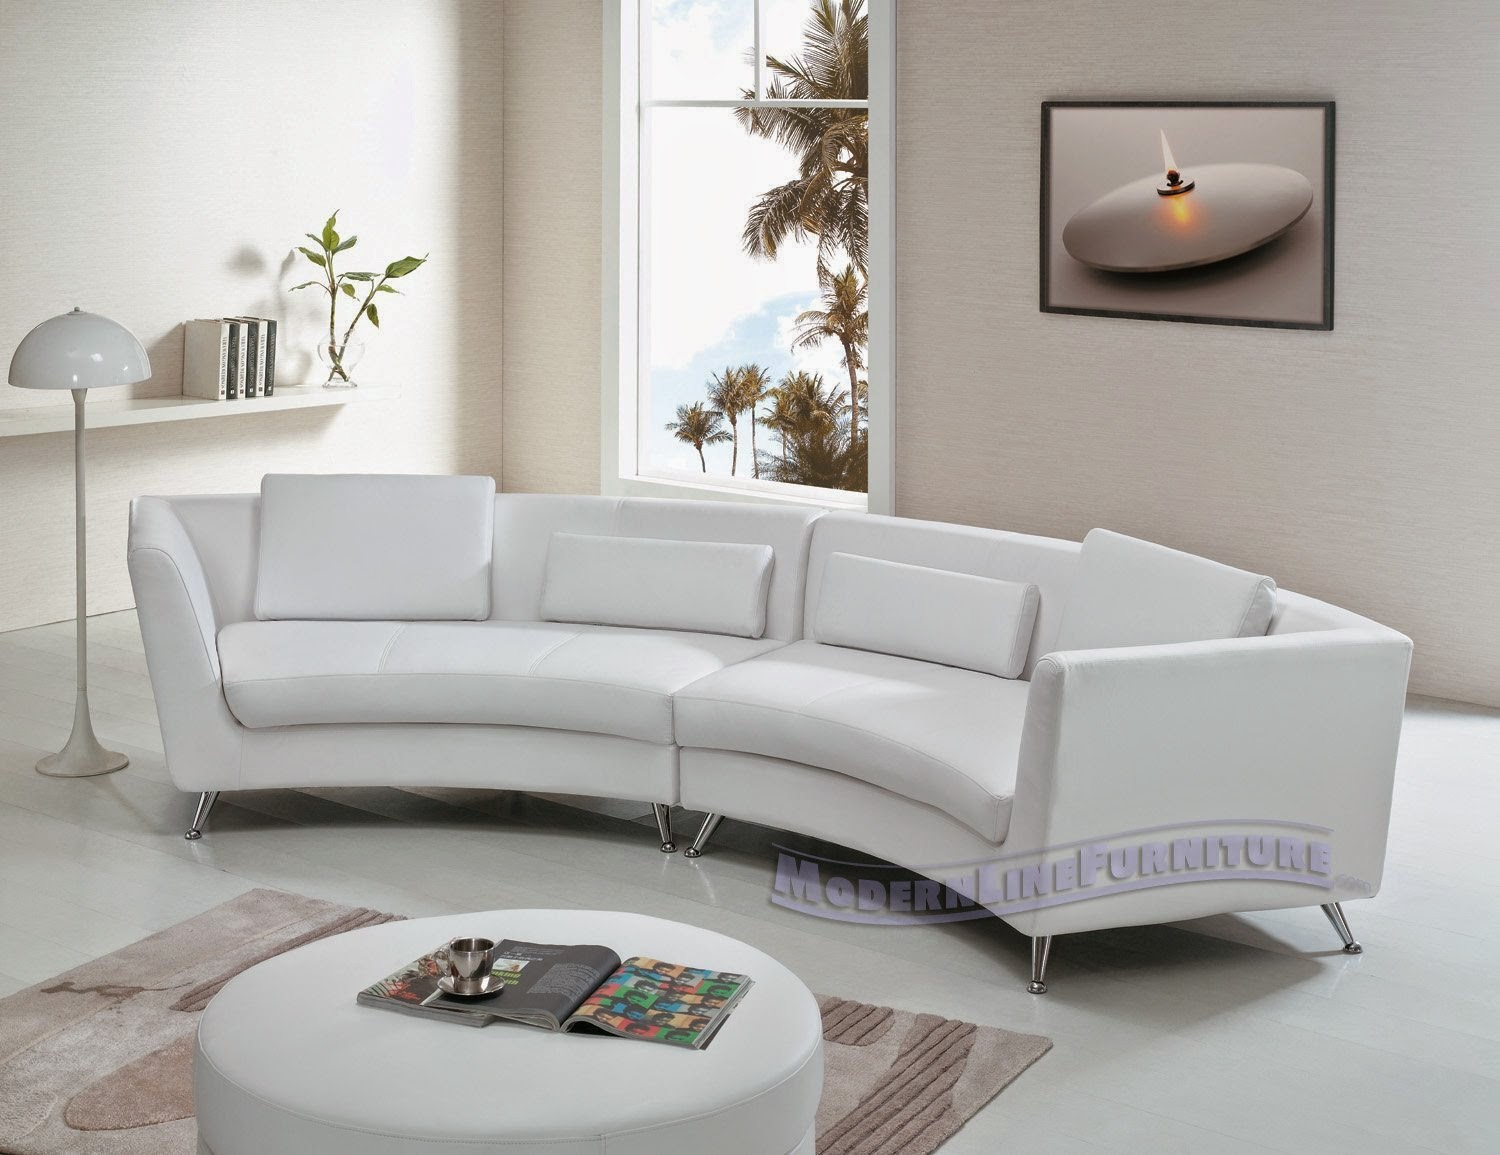 Sofa Curved Curved Sofa For Bay Window